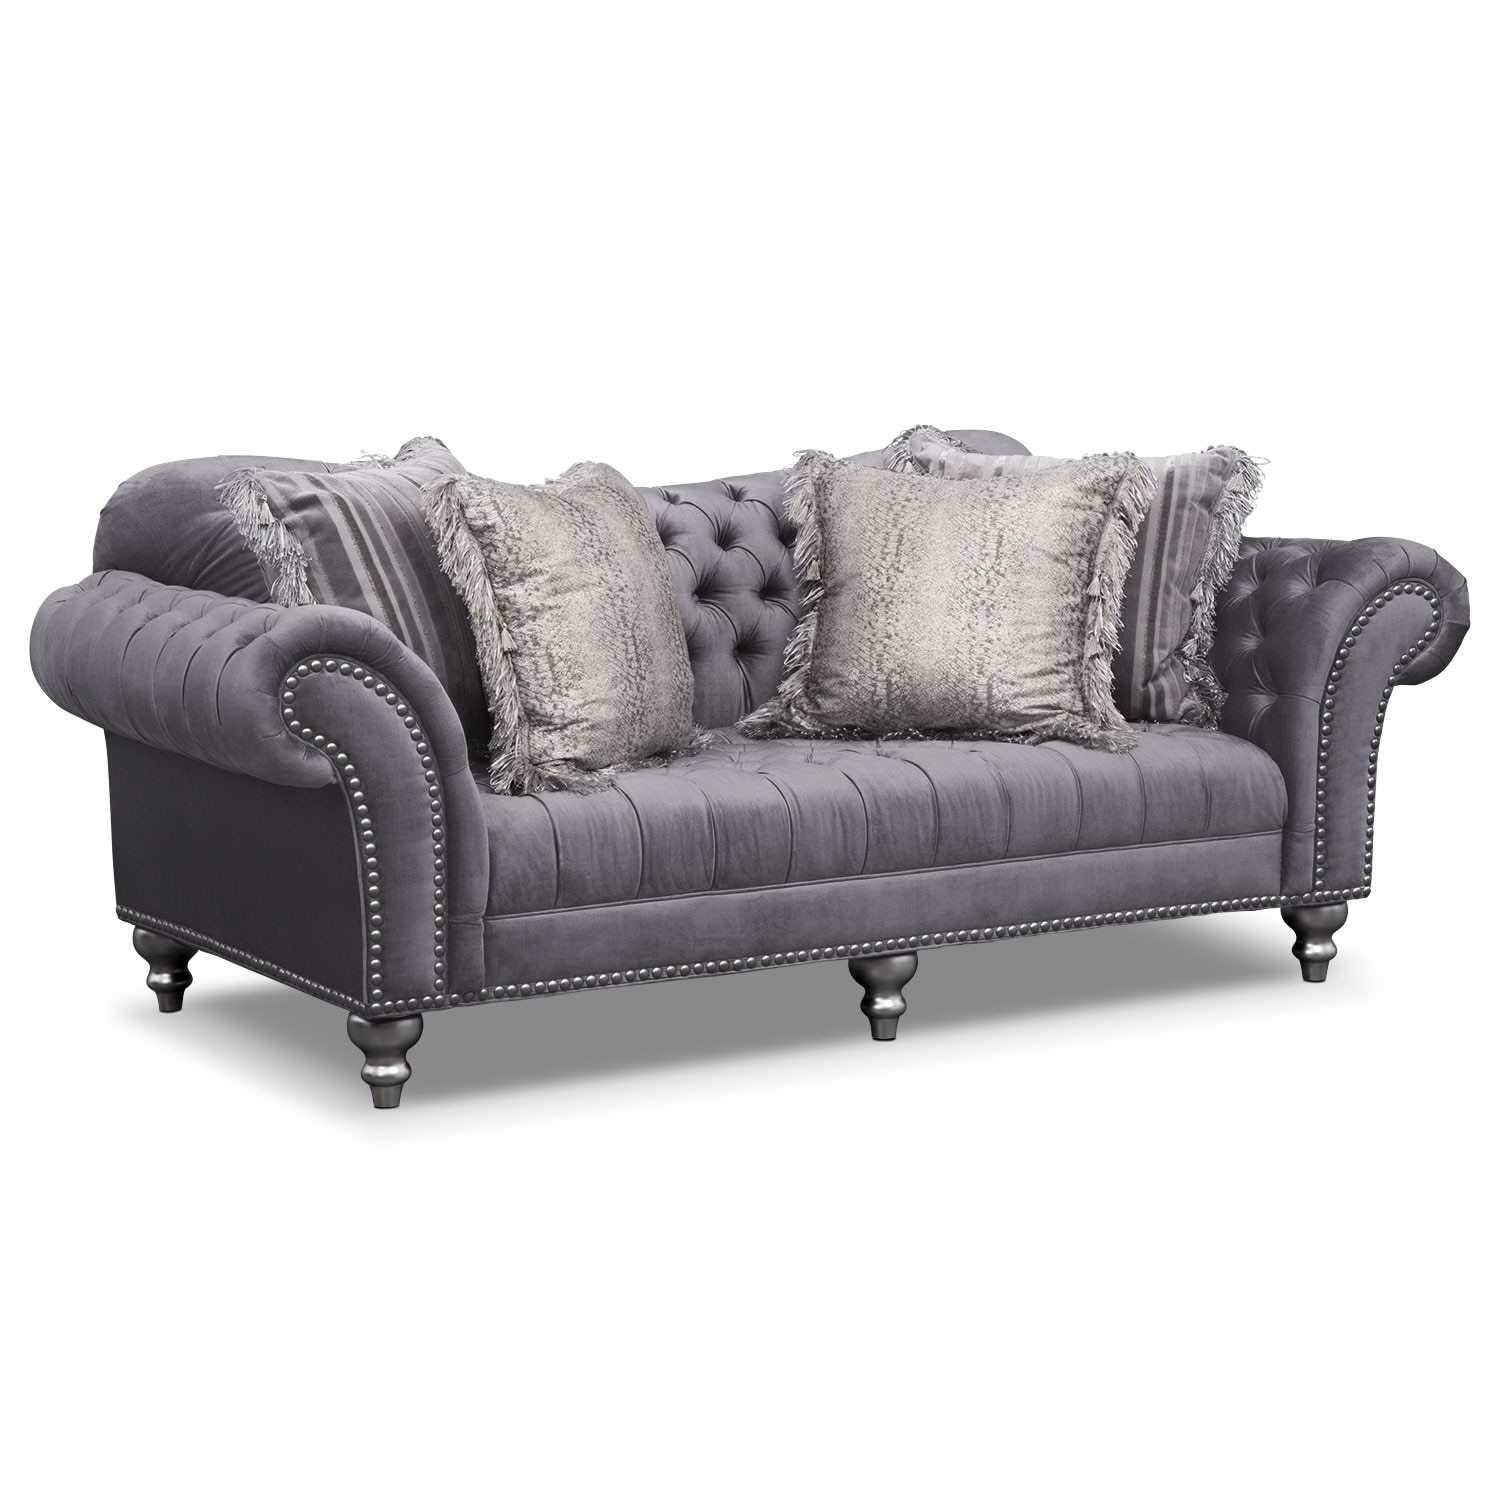 Brittney Sofa And Chair Set Gray American Signature Furniture For Sofa And Chair Set (Image 3 of 15)